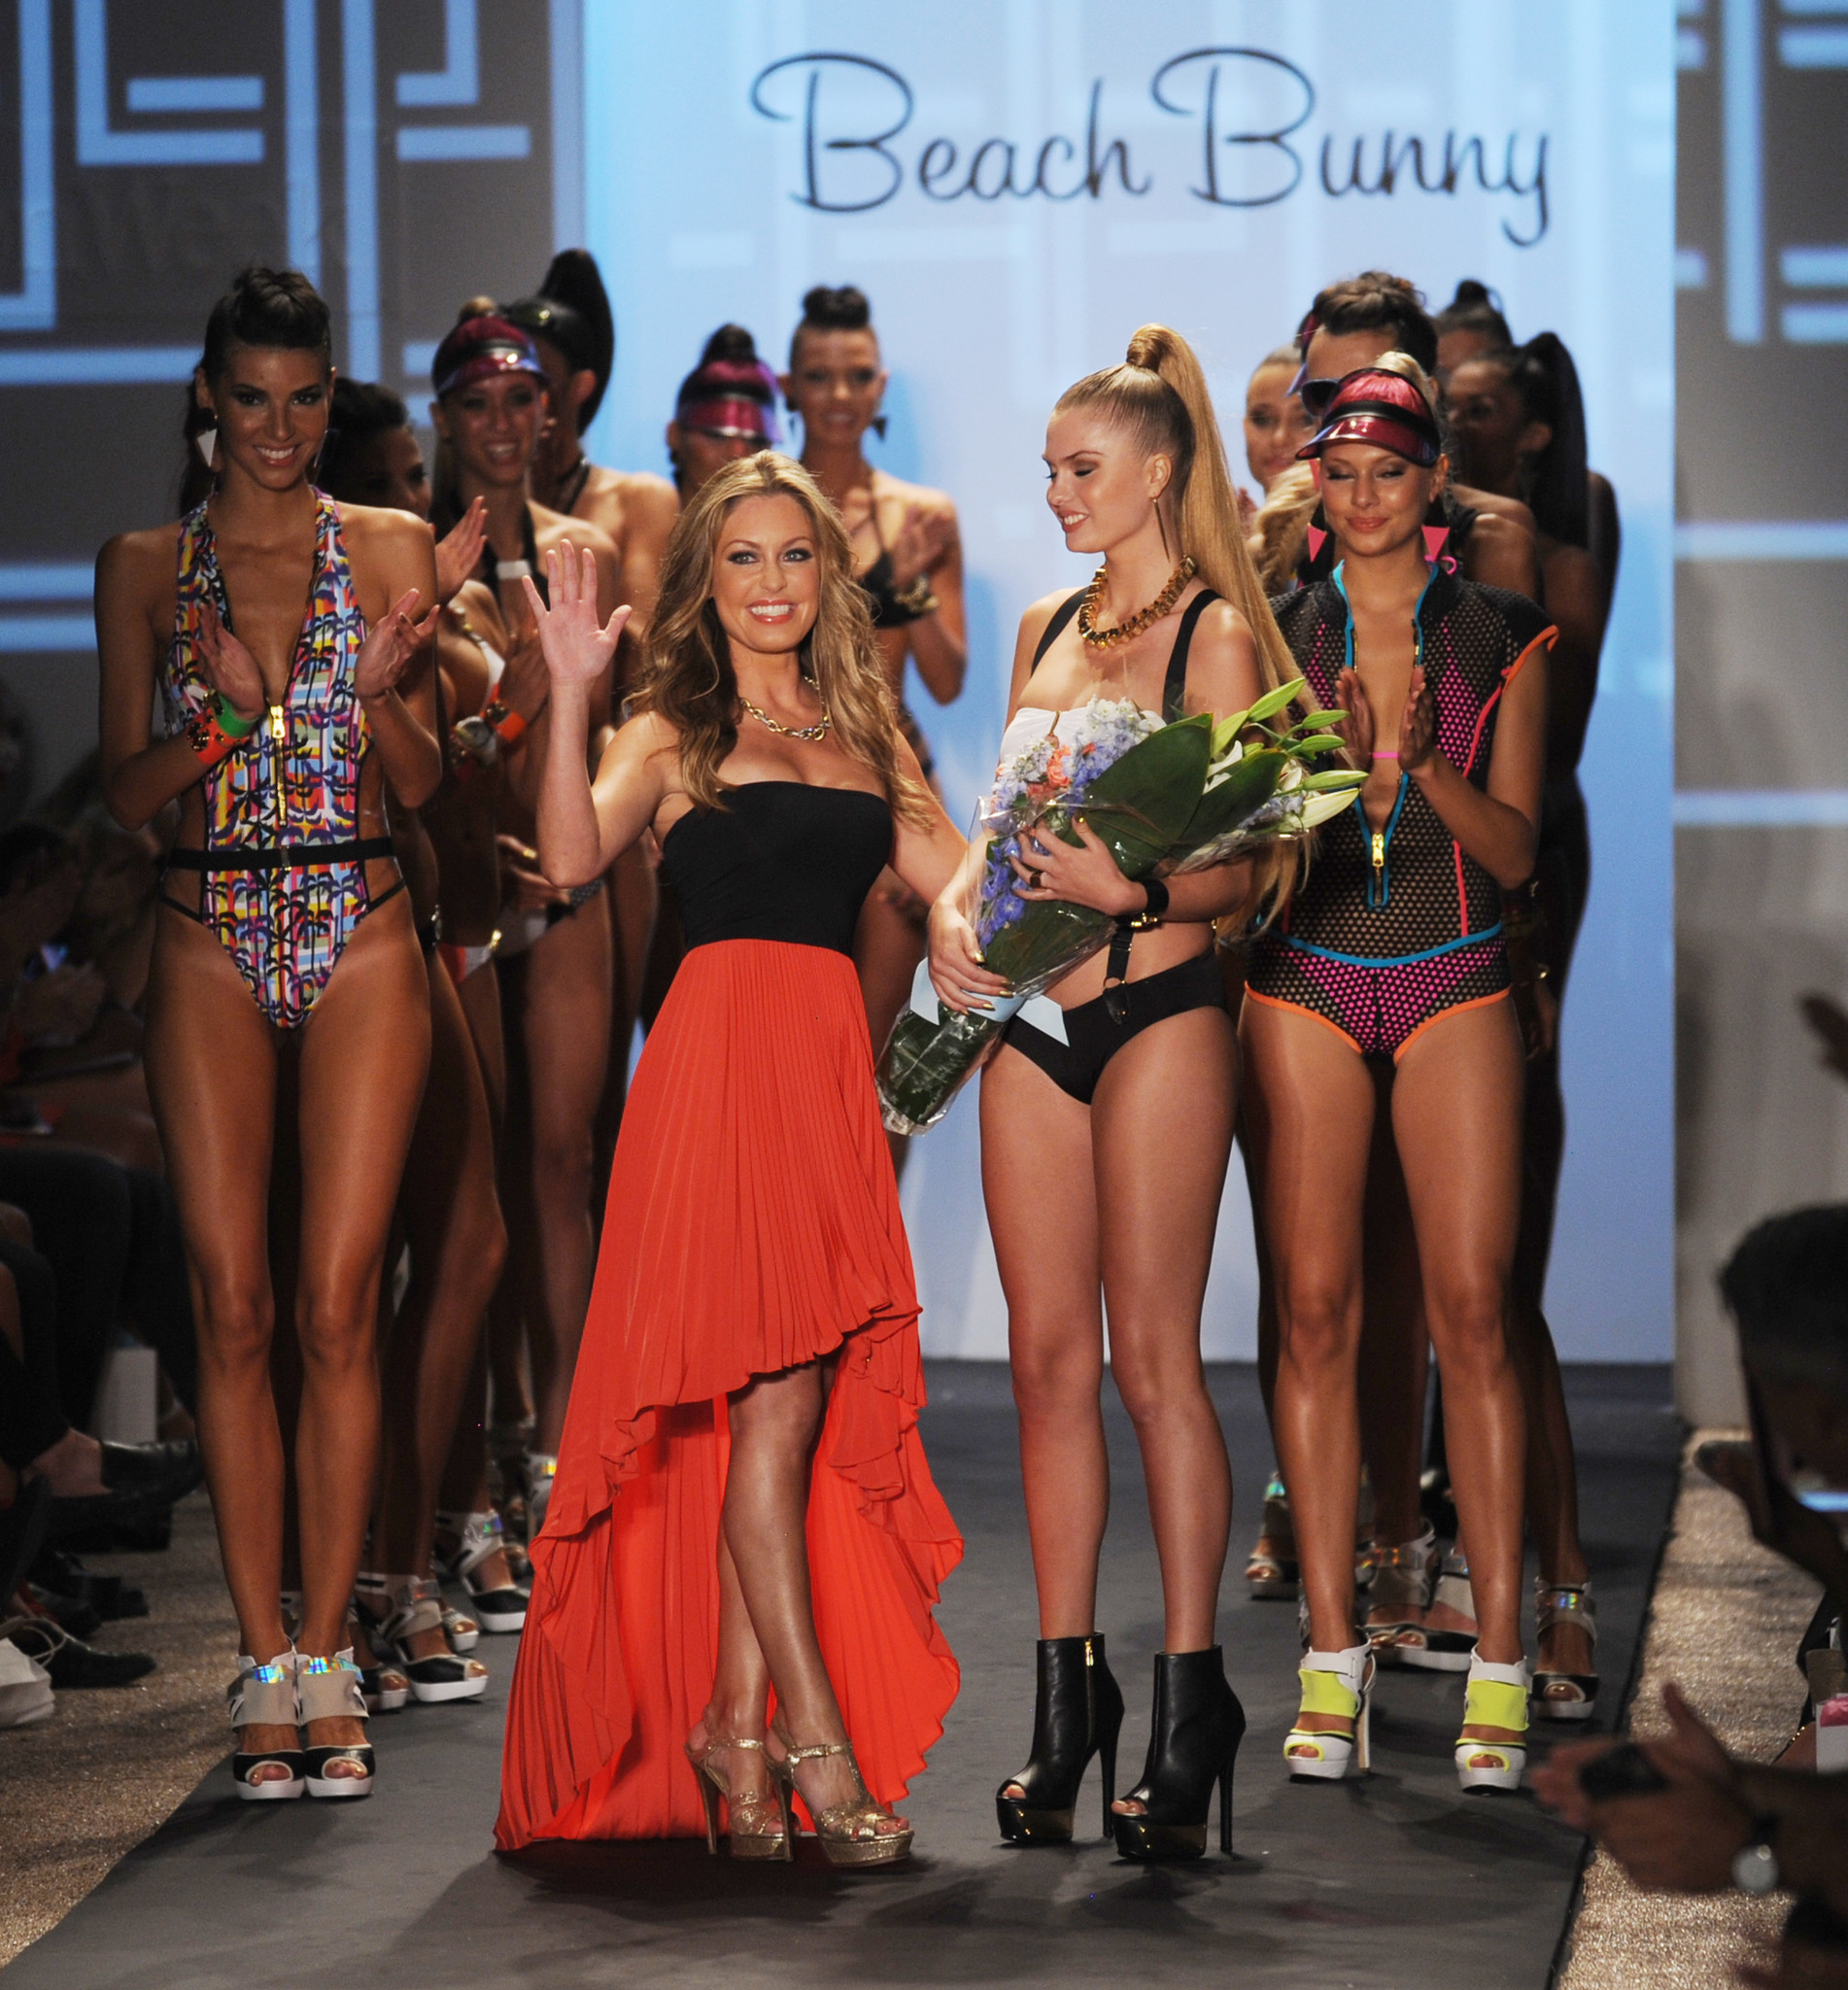 Miami Swim Week: The catwalk - Beach Bunny